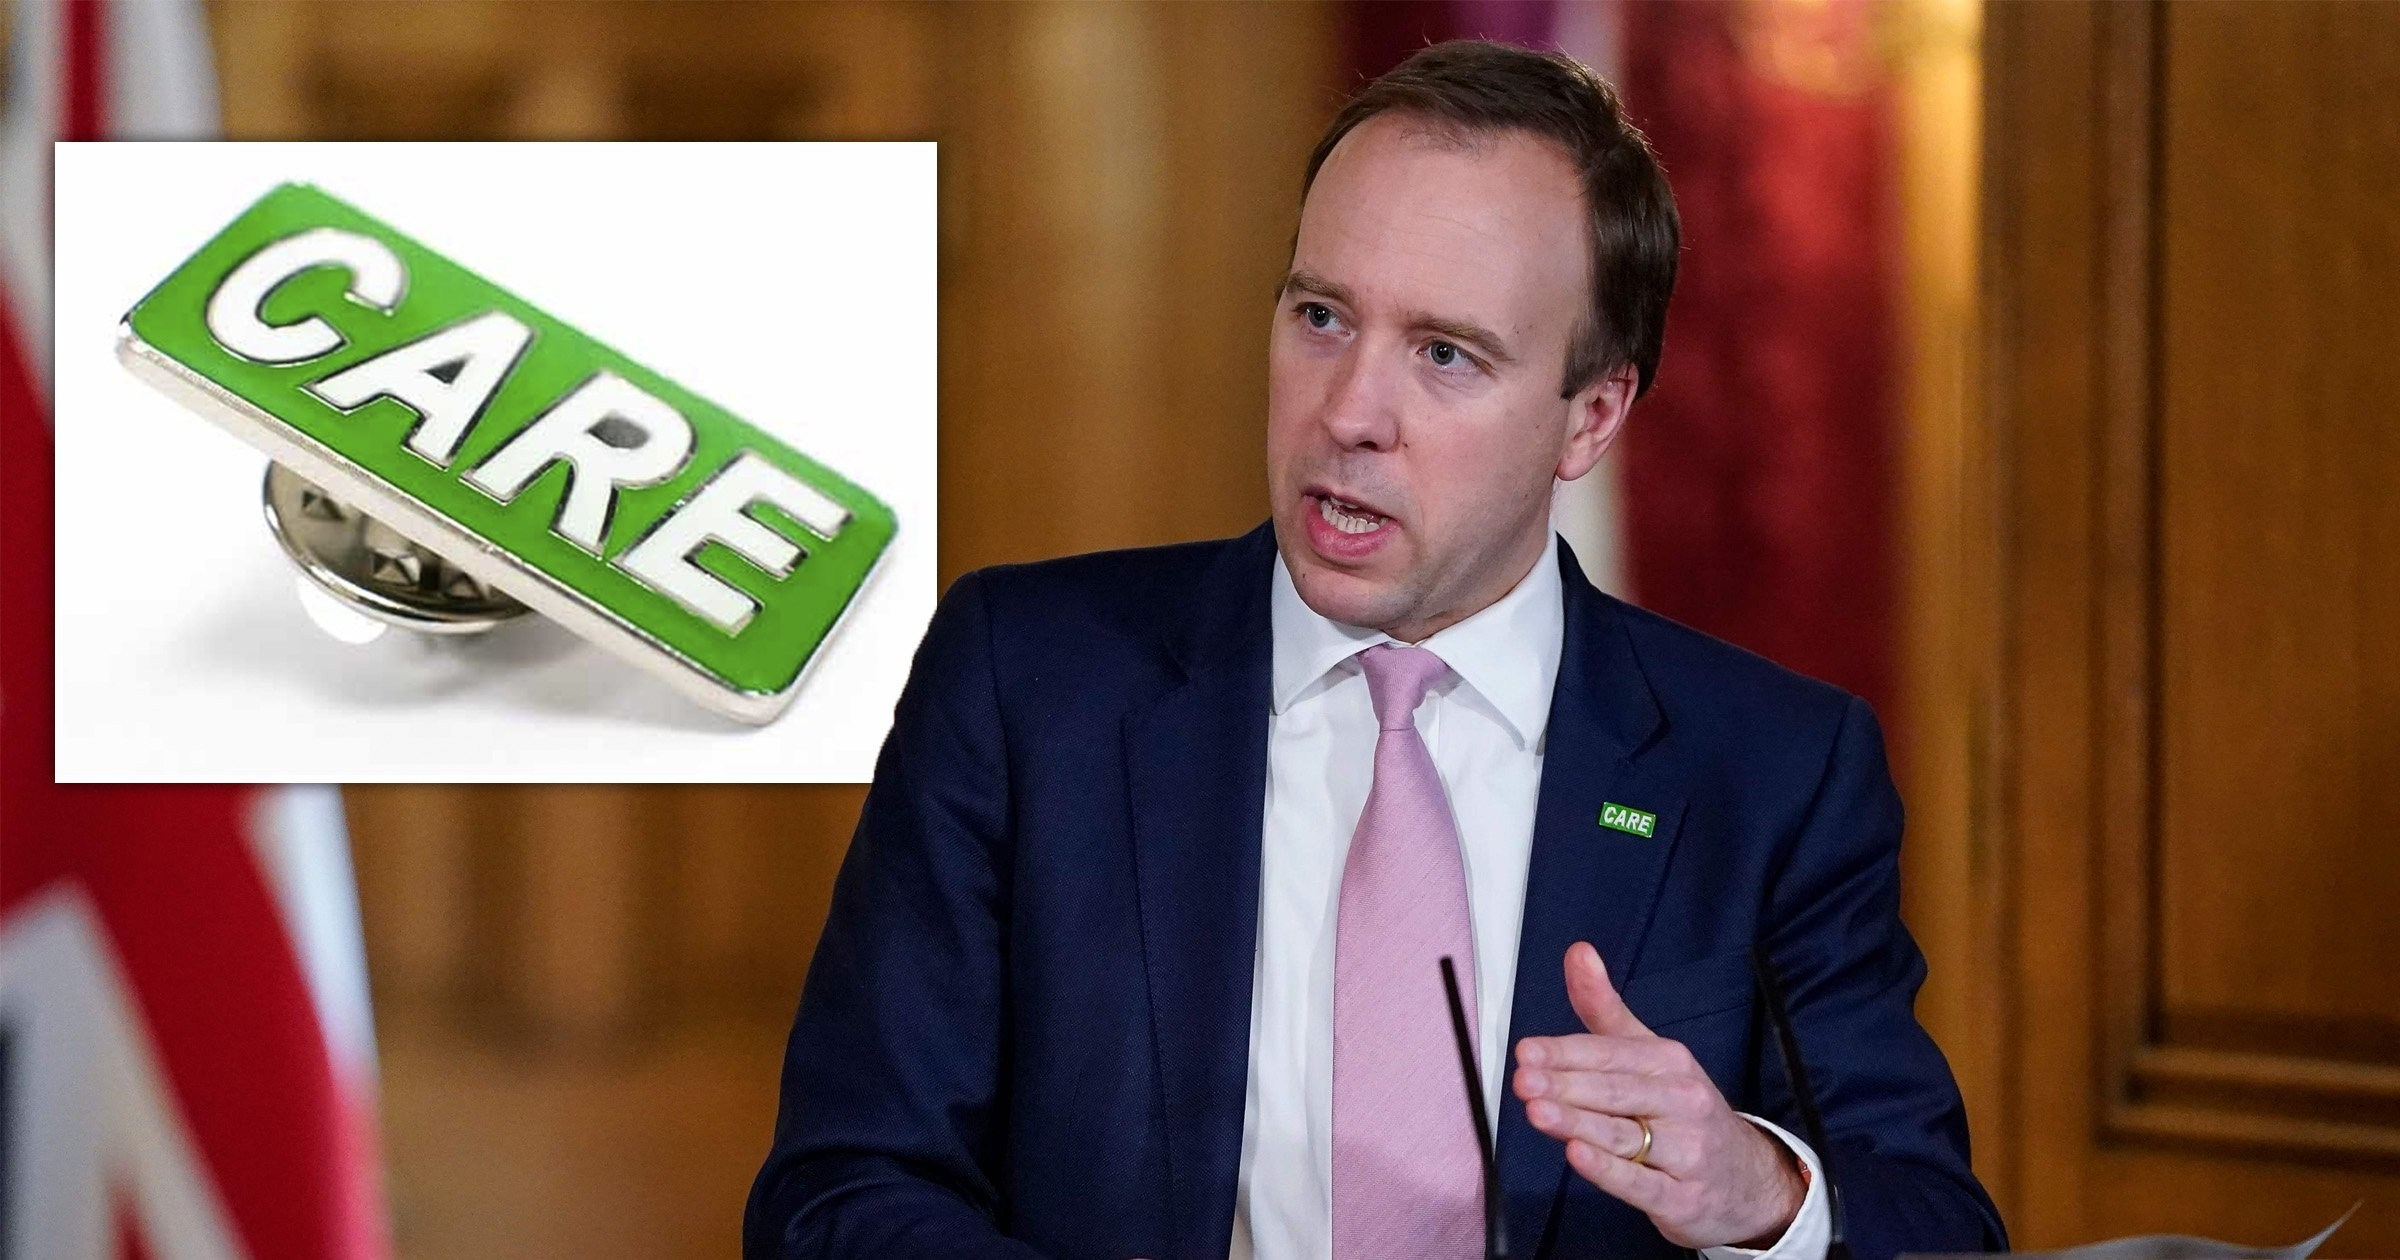 Health secretary mocked for announcing badge for care workers